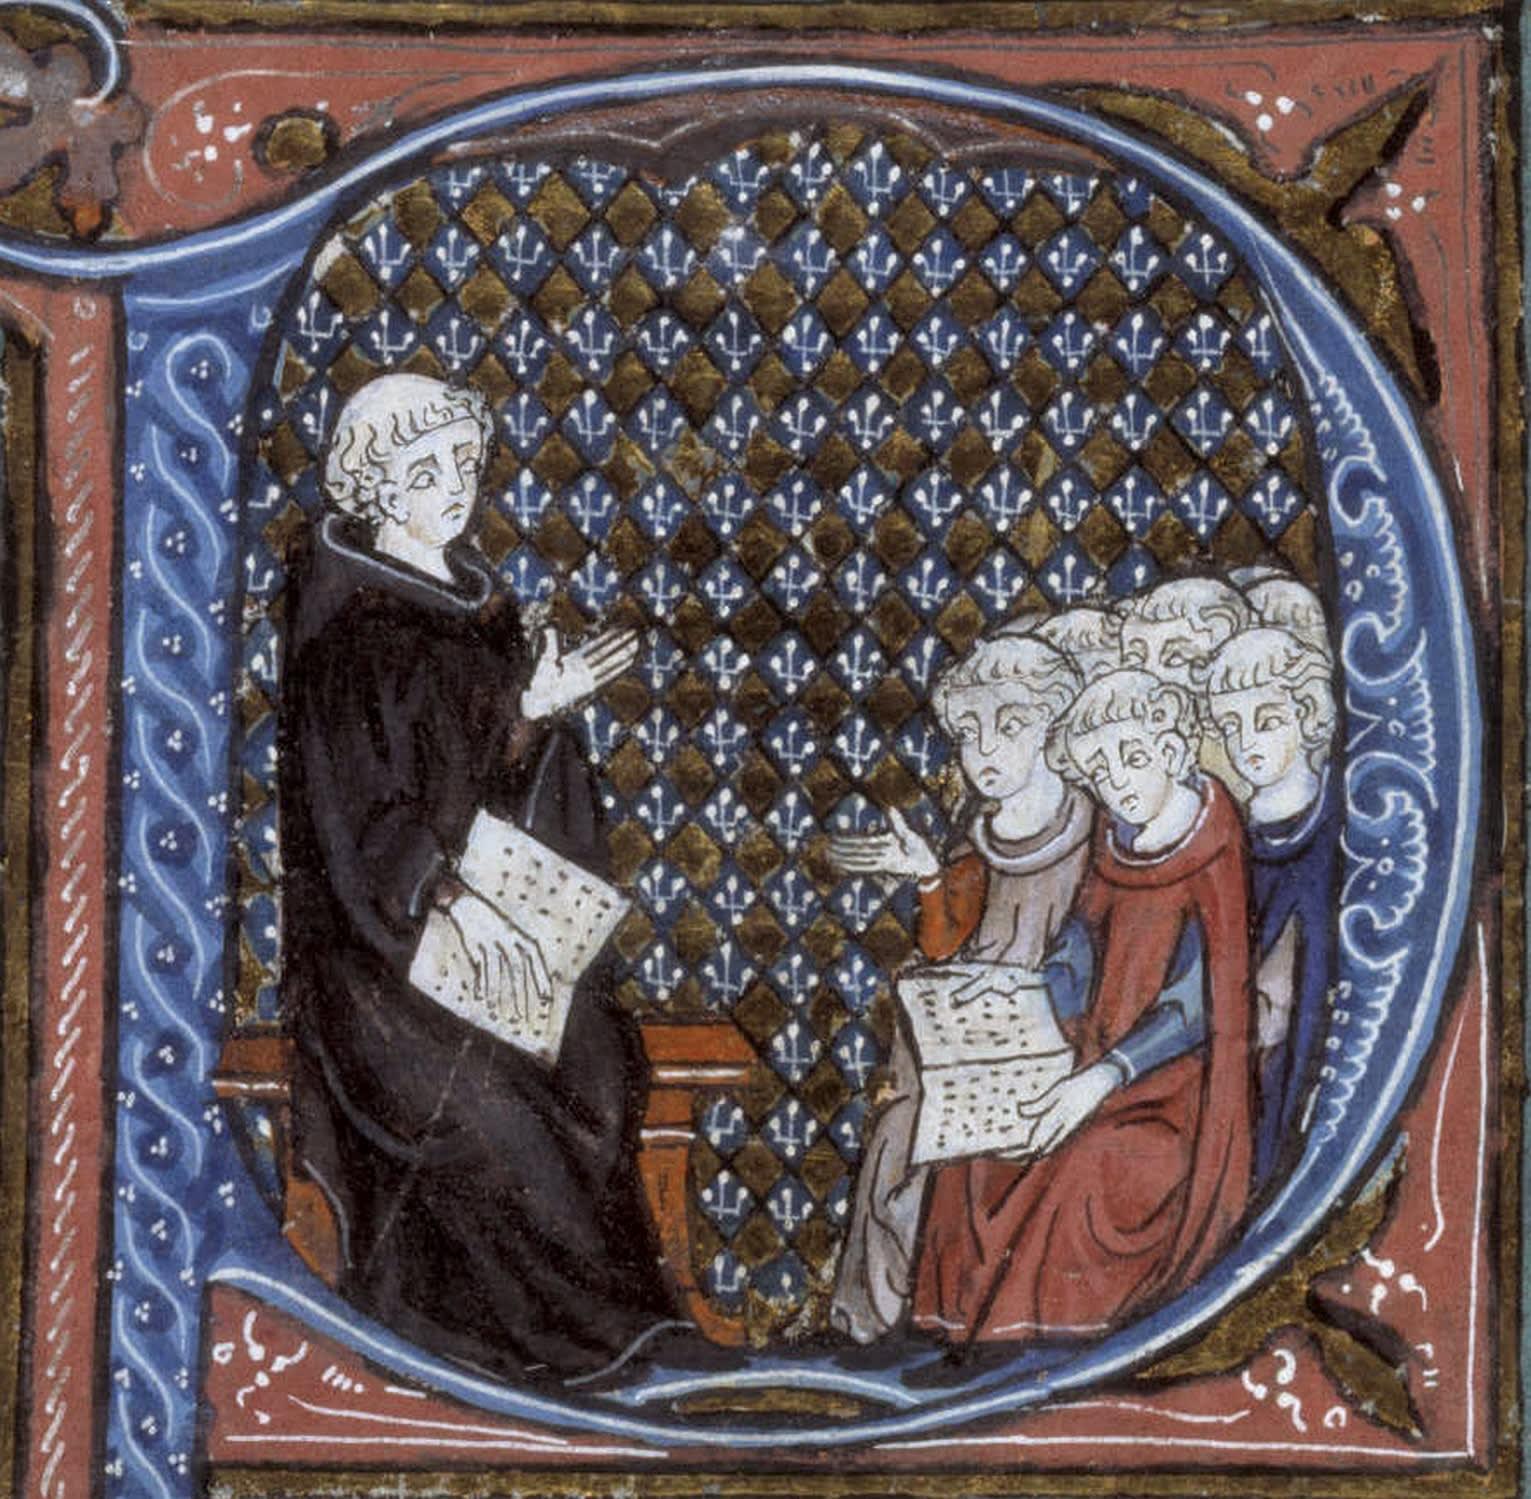 This image shows the The initial P showing a monk talking to a group of pupils.